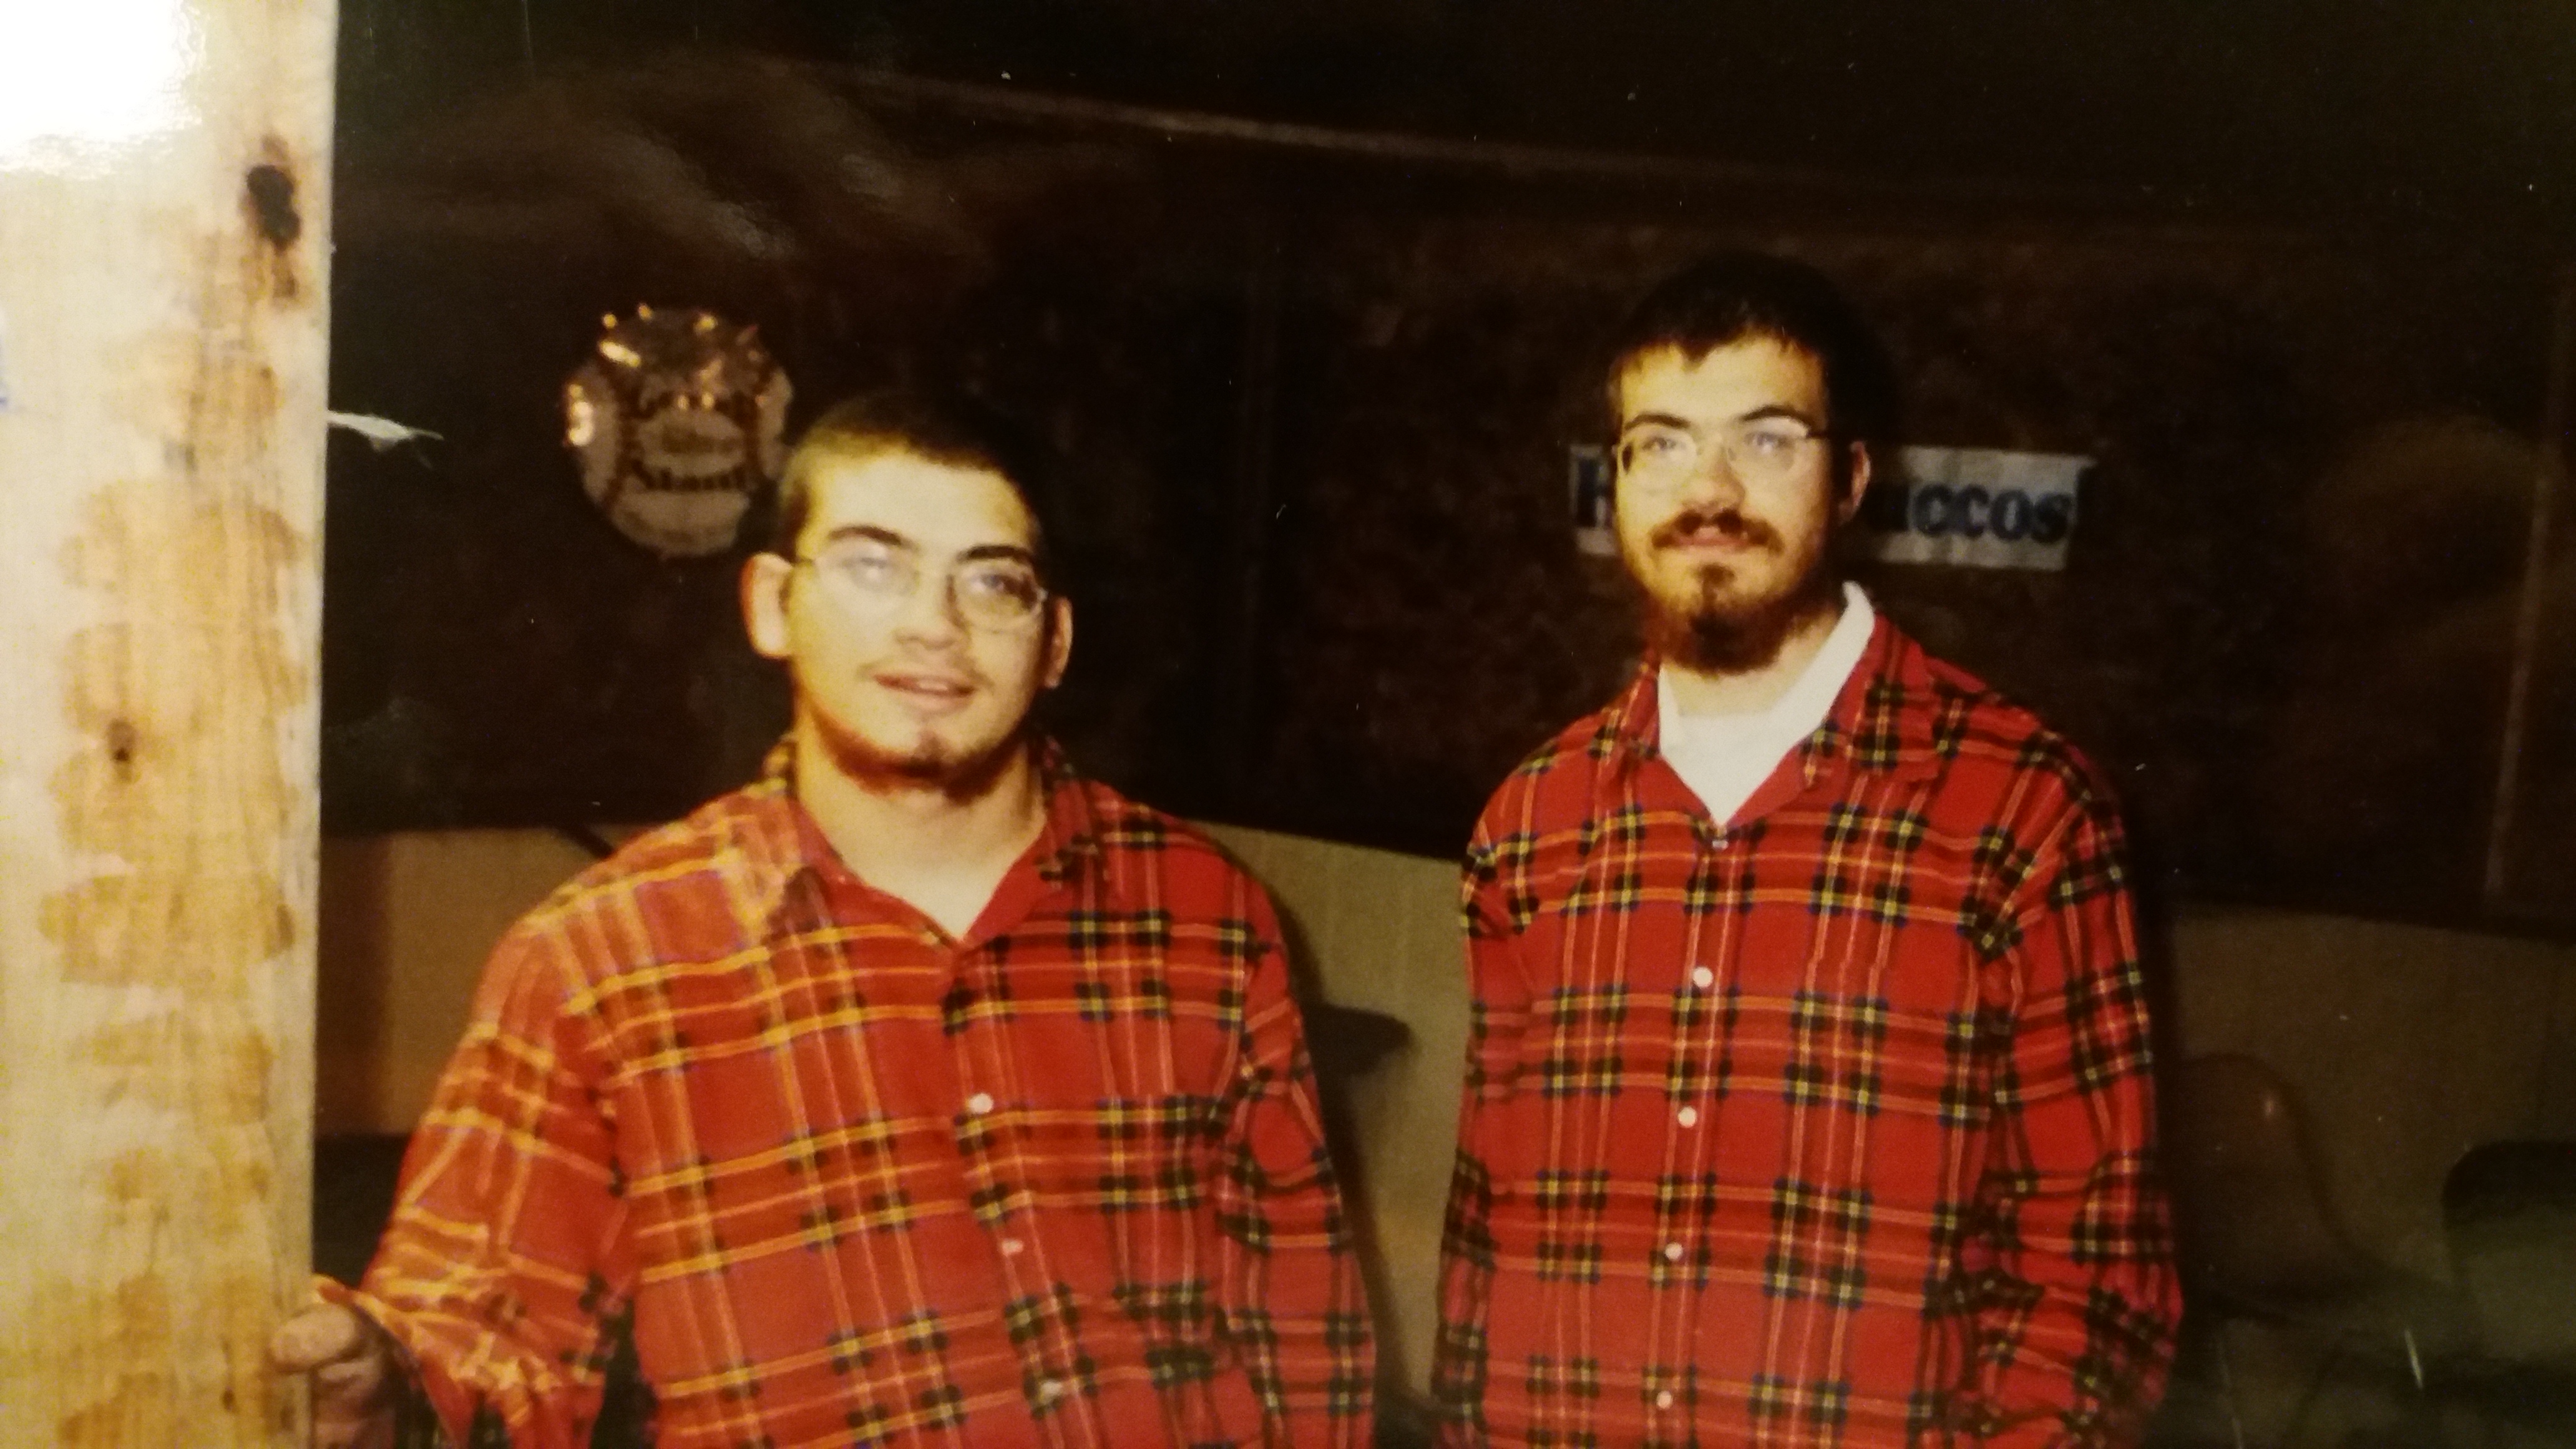 This is a Photo of Rabbi Mendel's brothers Yossi and Shmuly taking down a Sukkah in Flannel Shirts